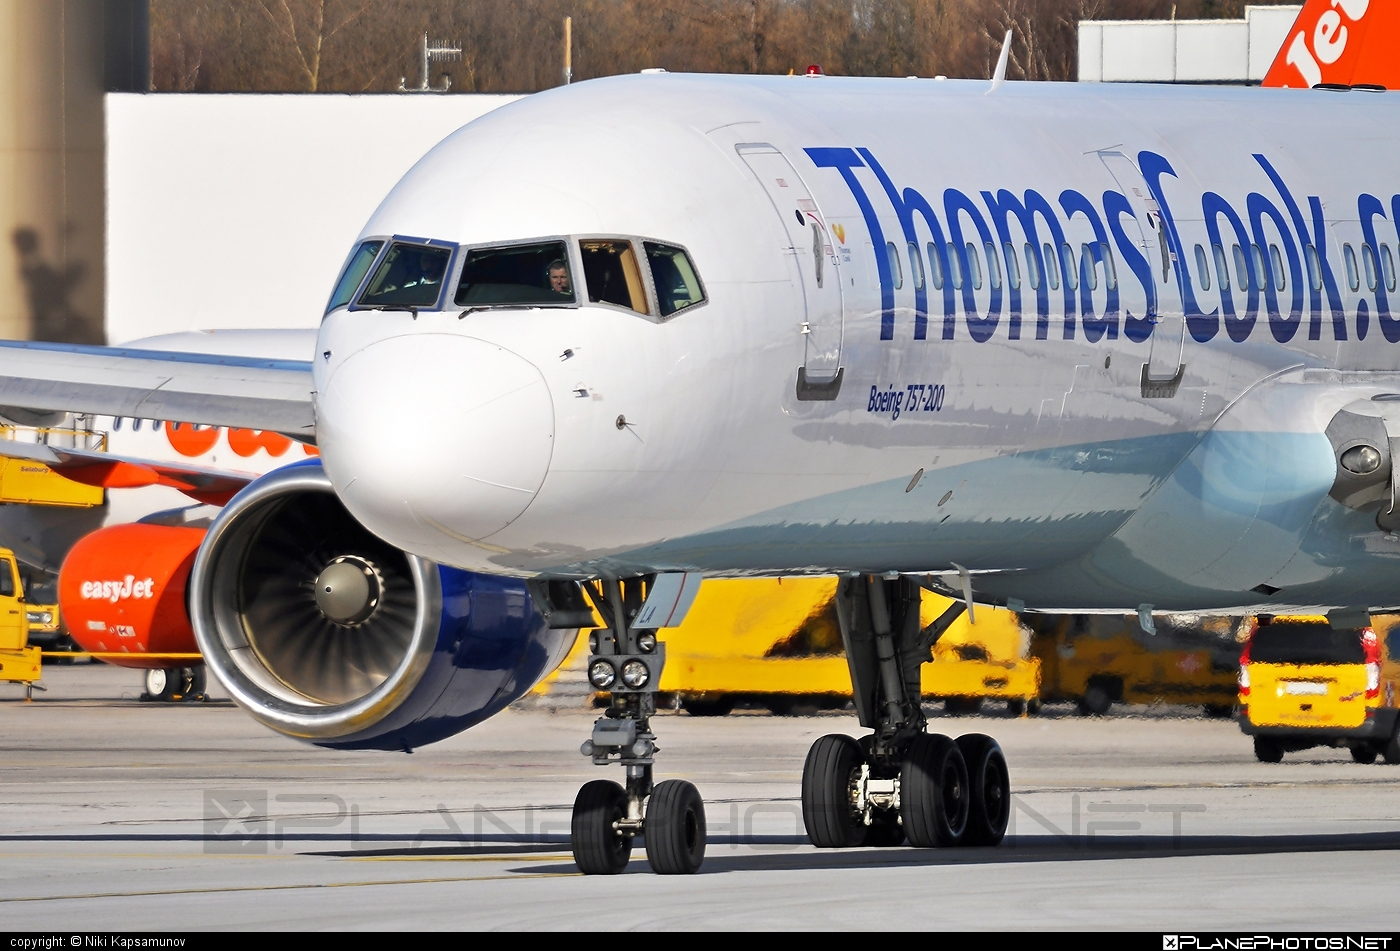 Boeing 757-200 - G-FCLA operated by Thomas Cook Airlines #b757 #boeing #boeing757